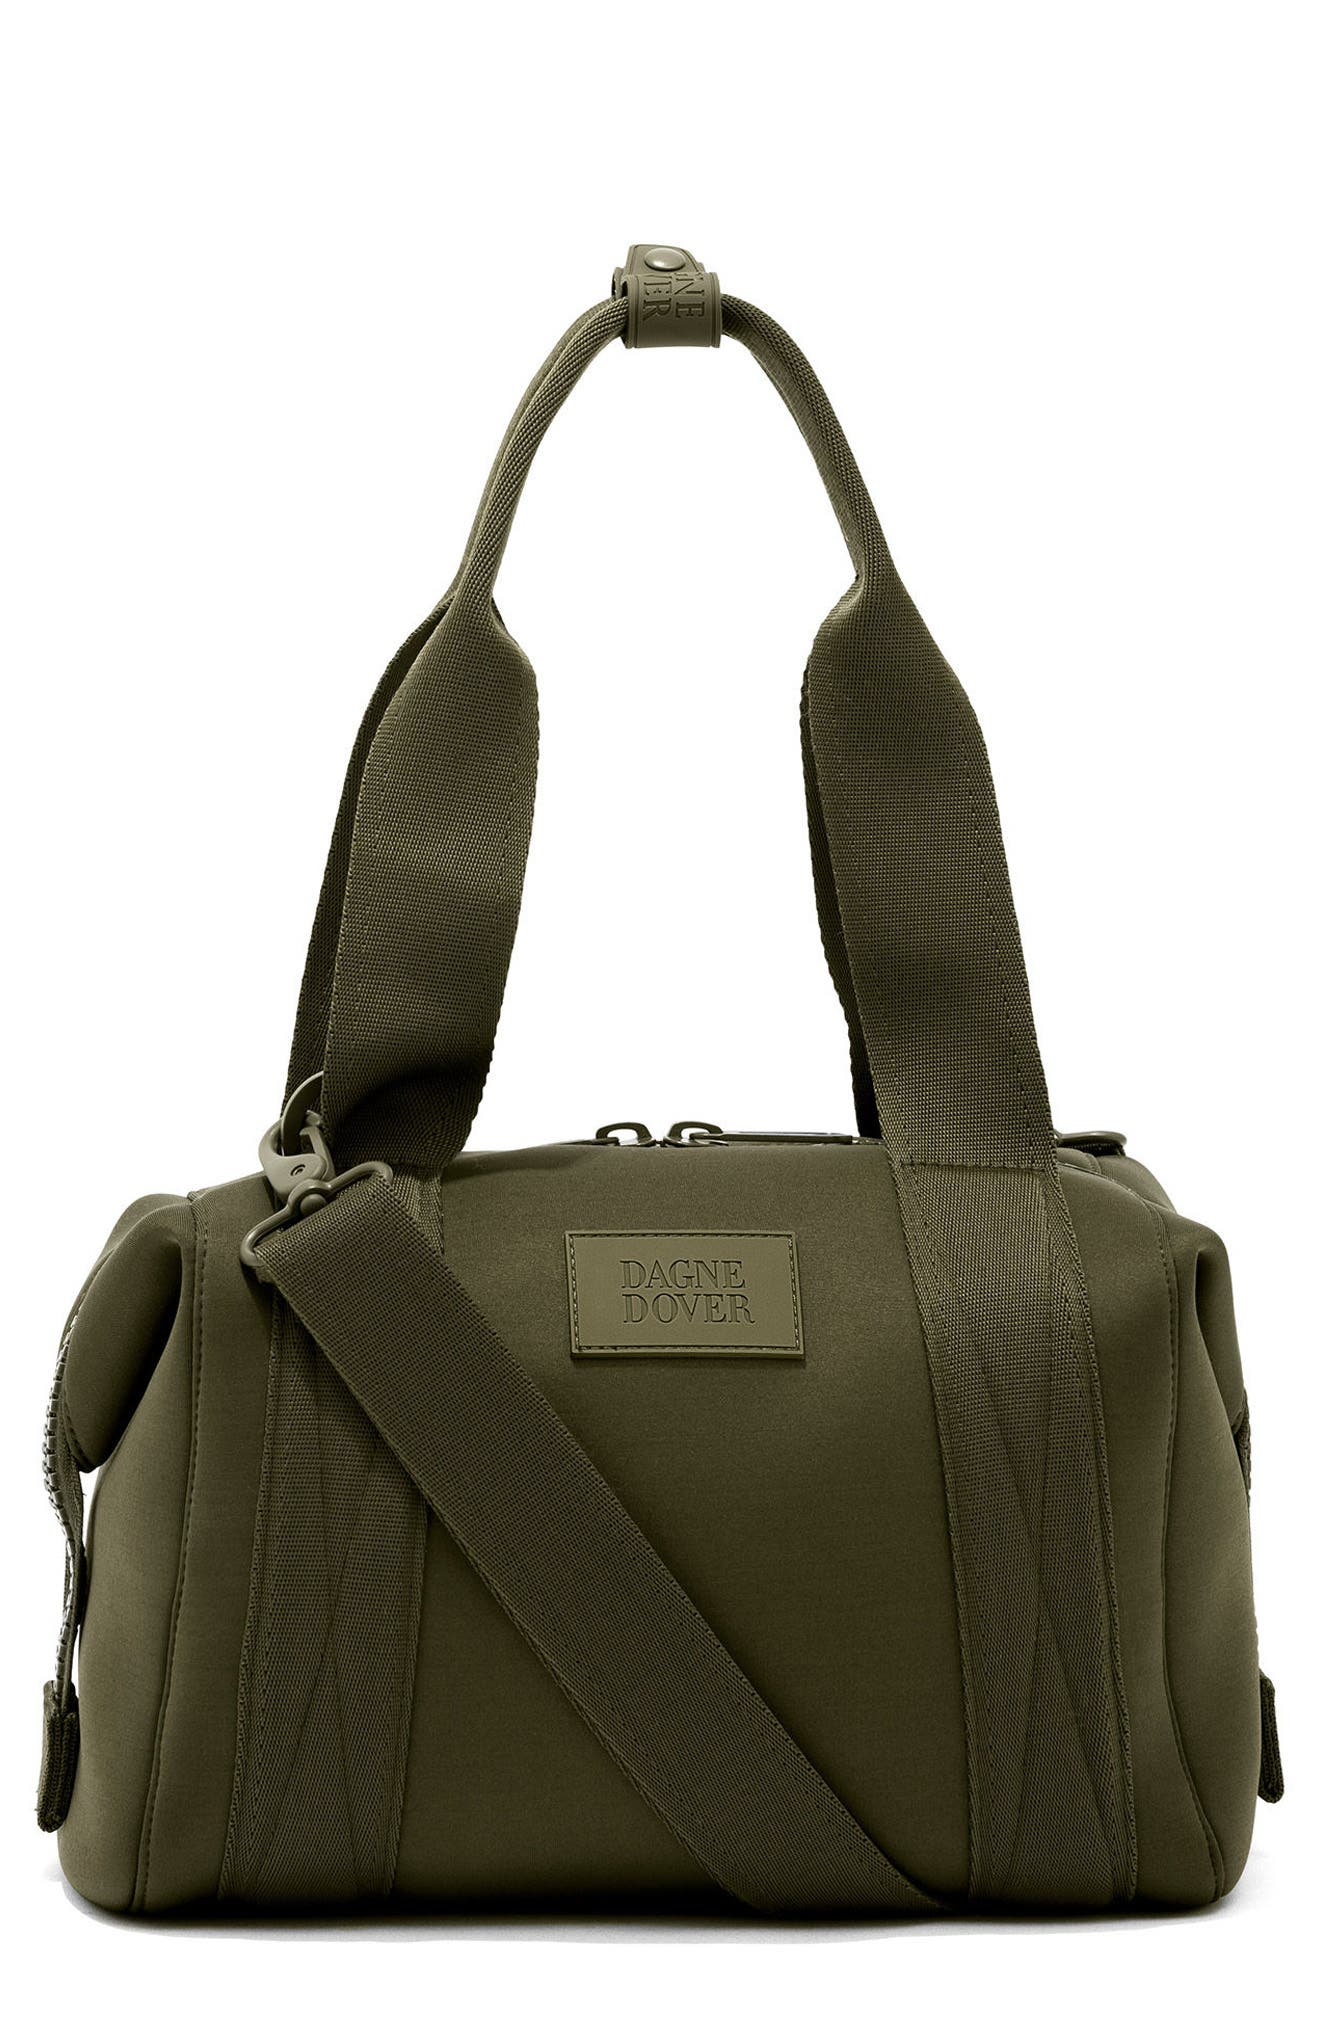 365 SMALL LANDON CARRYALL DUFFEL BAG - GREEN